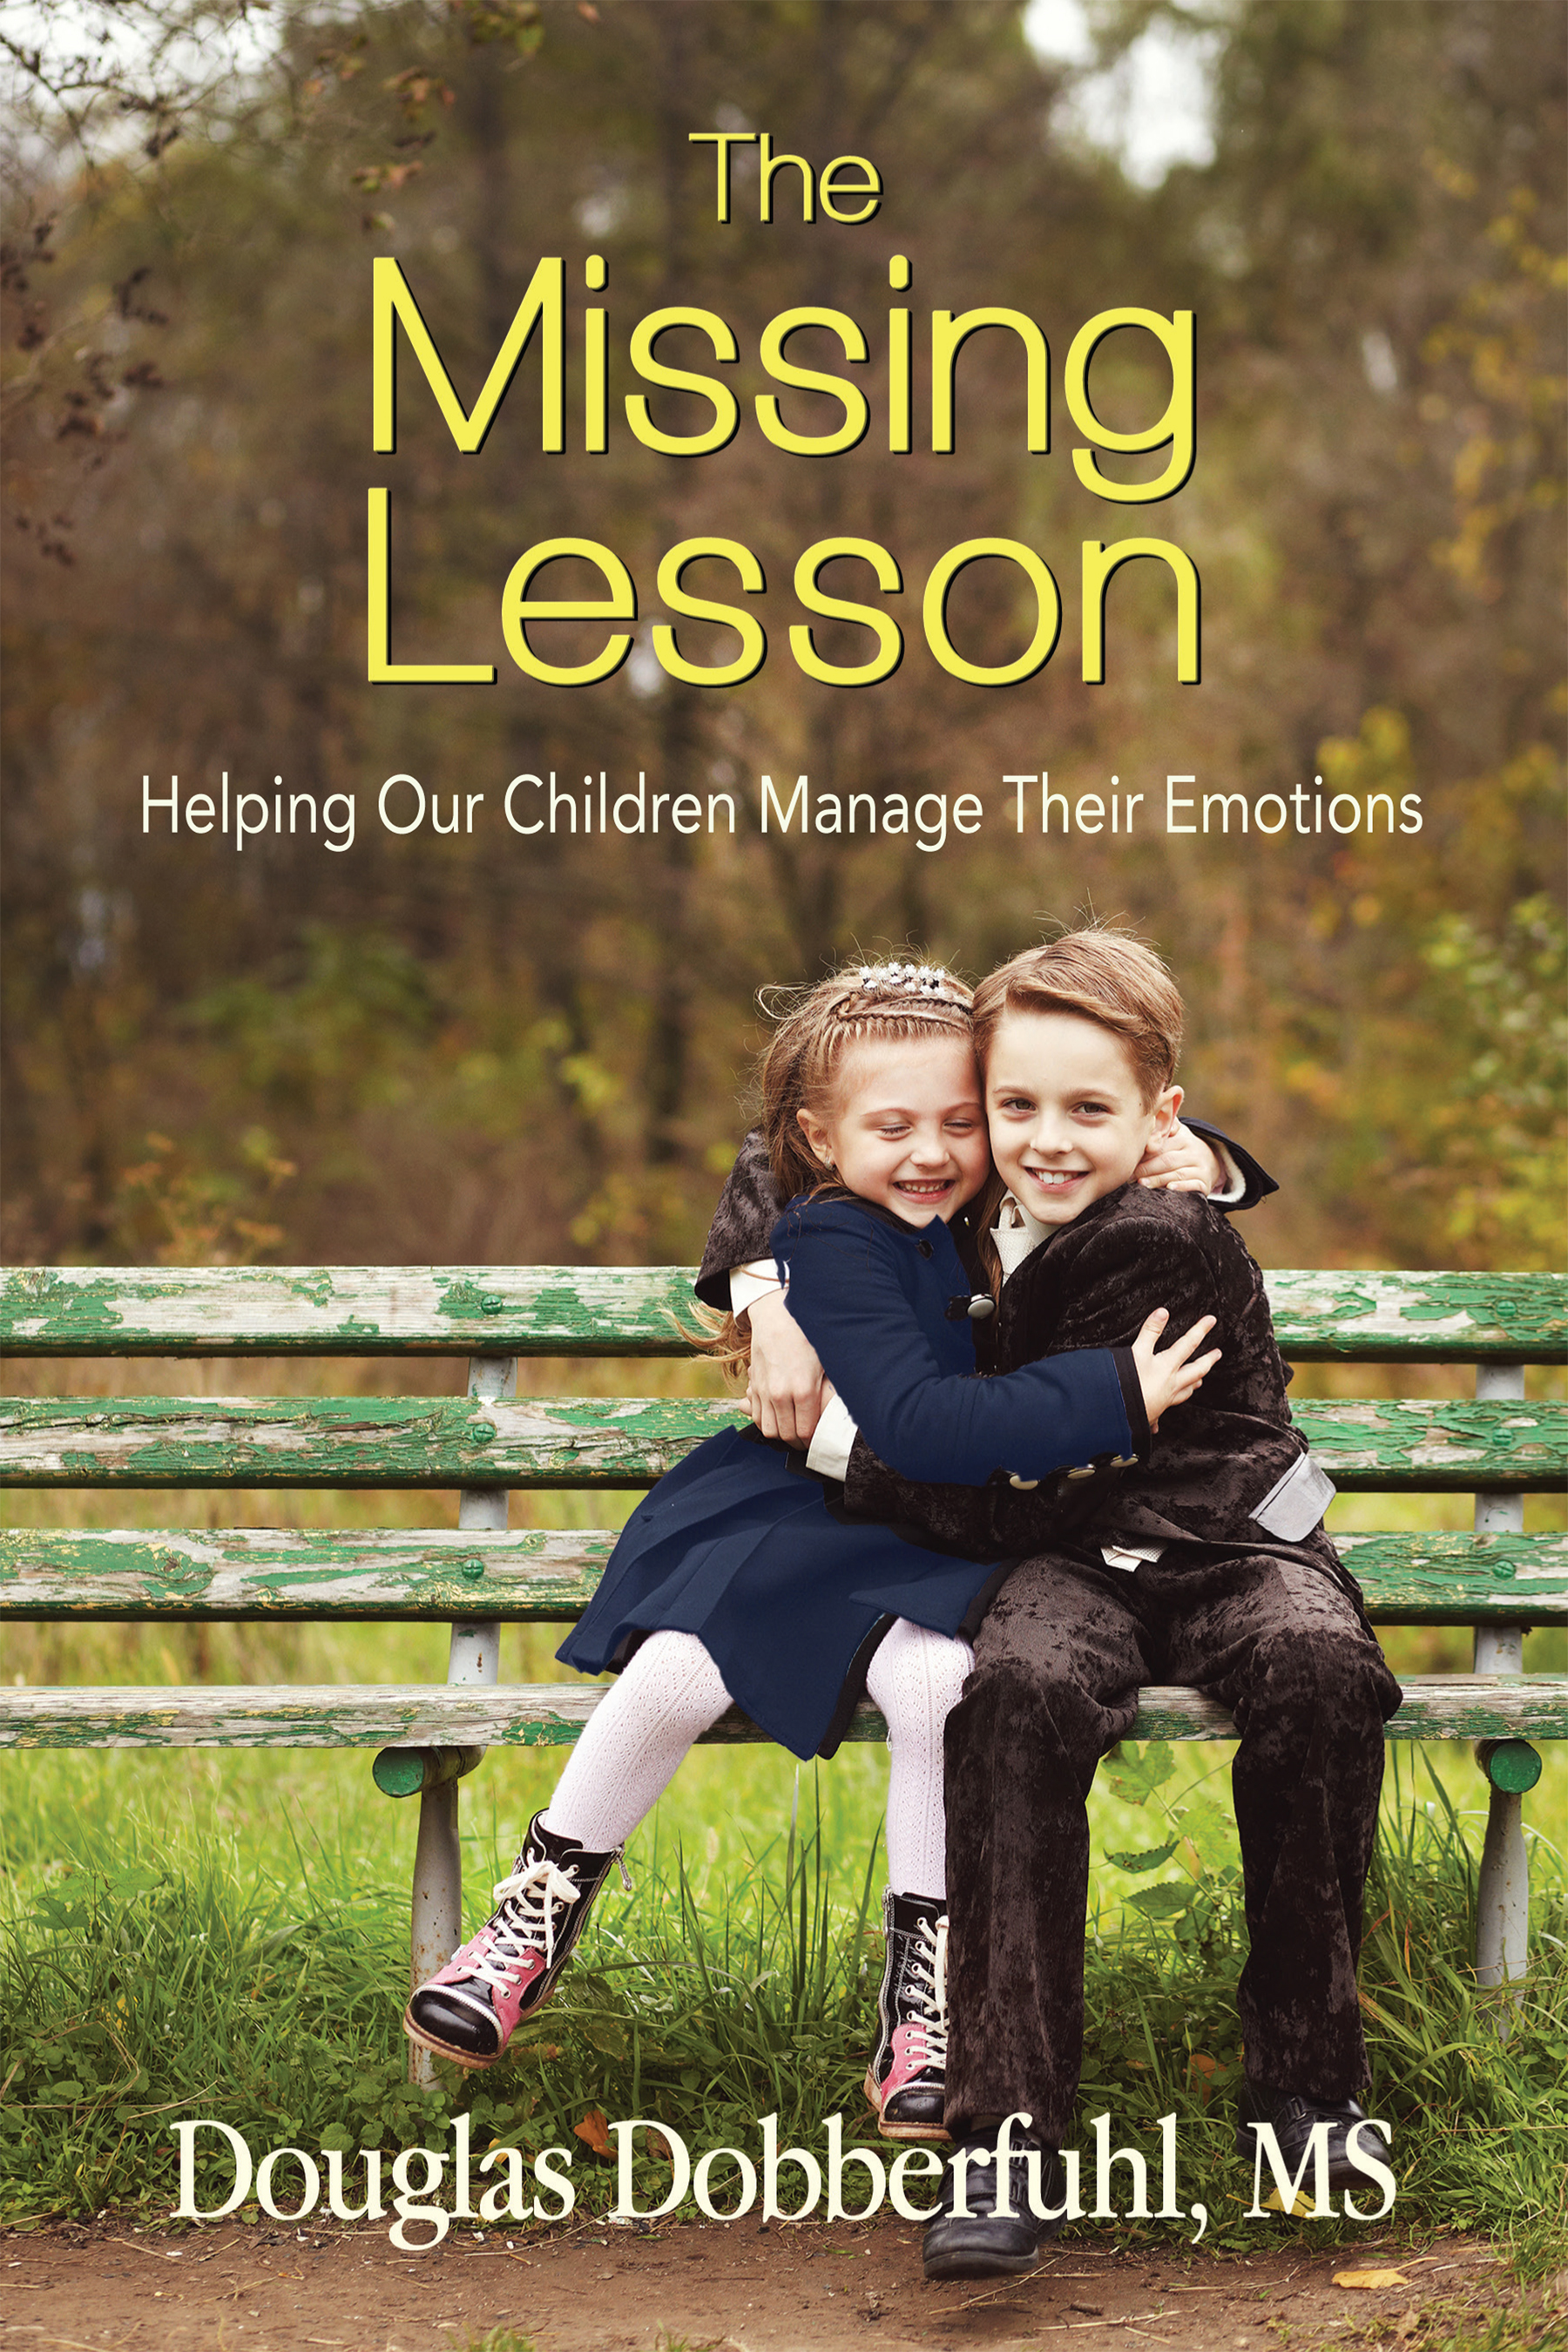 """""""The Missing Lesson: Helping Our Children Manage Their Emotions"""" is by Douglas Dobberfuhl."""